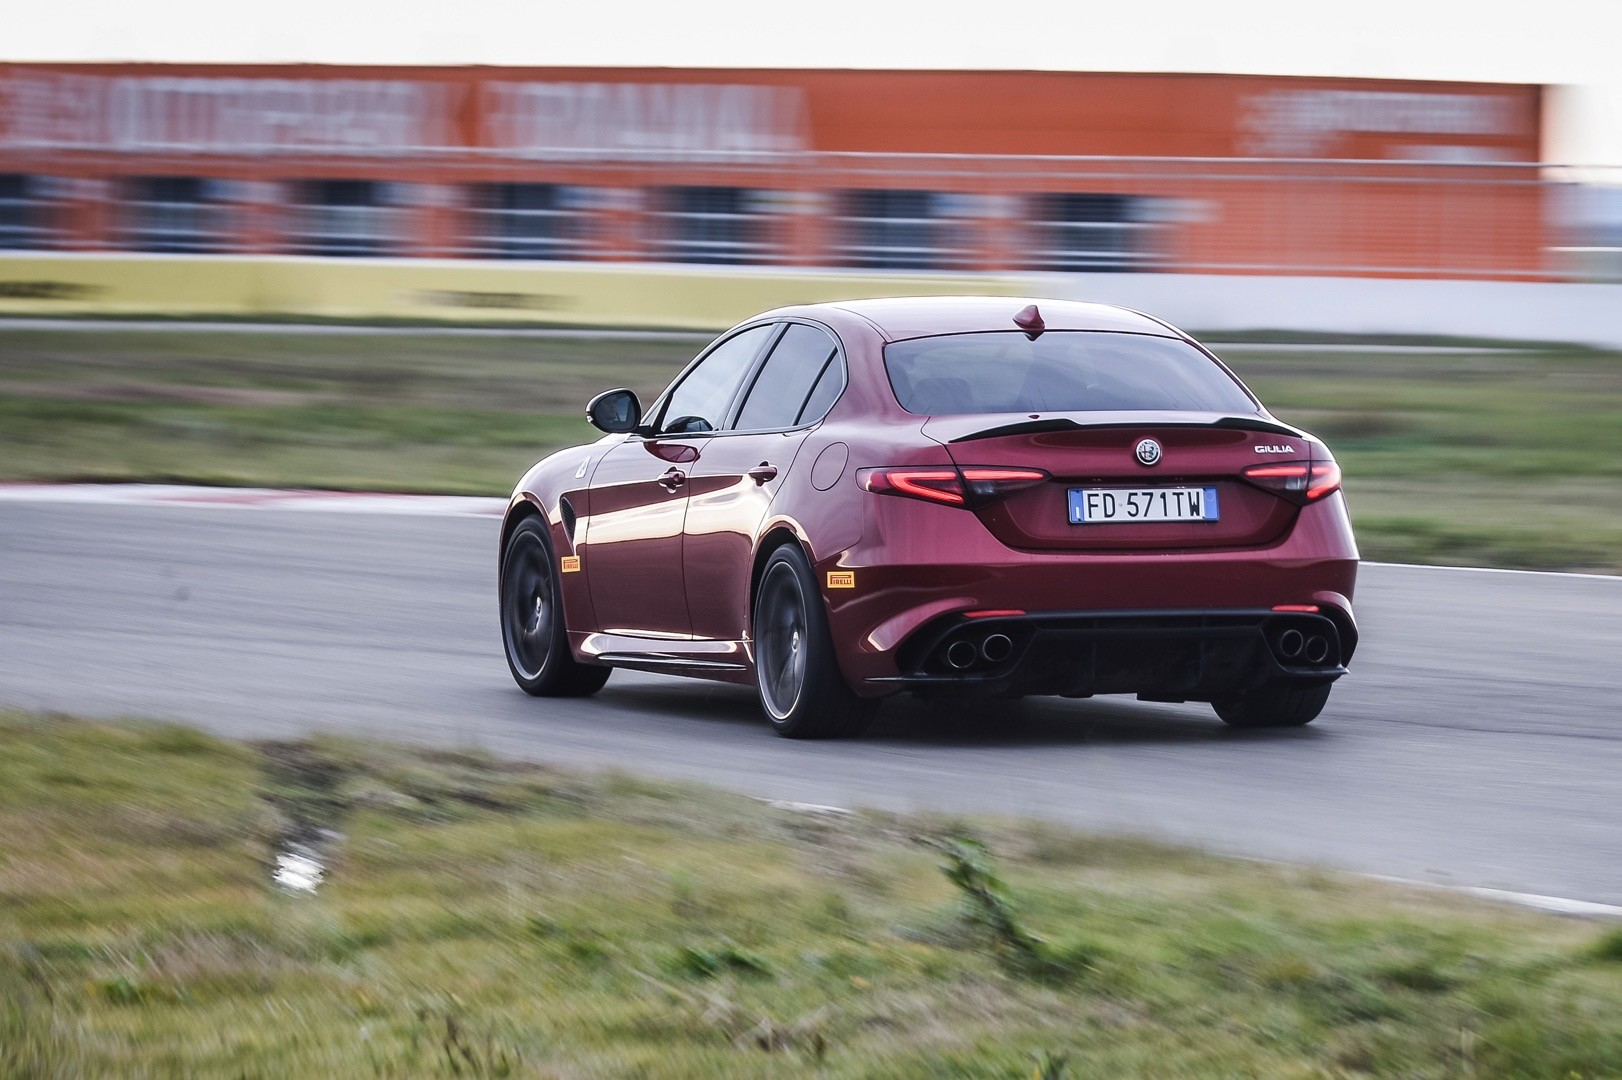 2018 alfa romeo giulia quadrifoglio adds more standard kit  gets more expensive